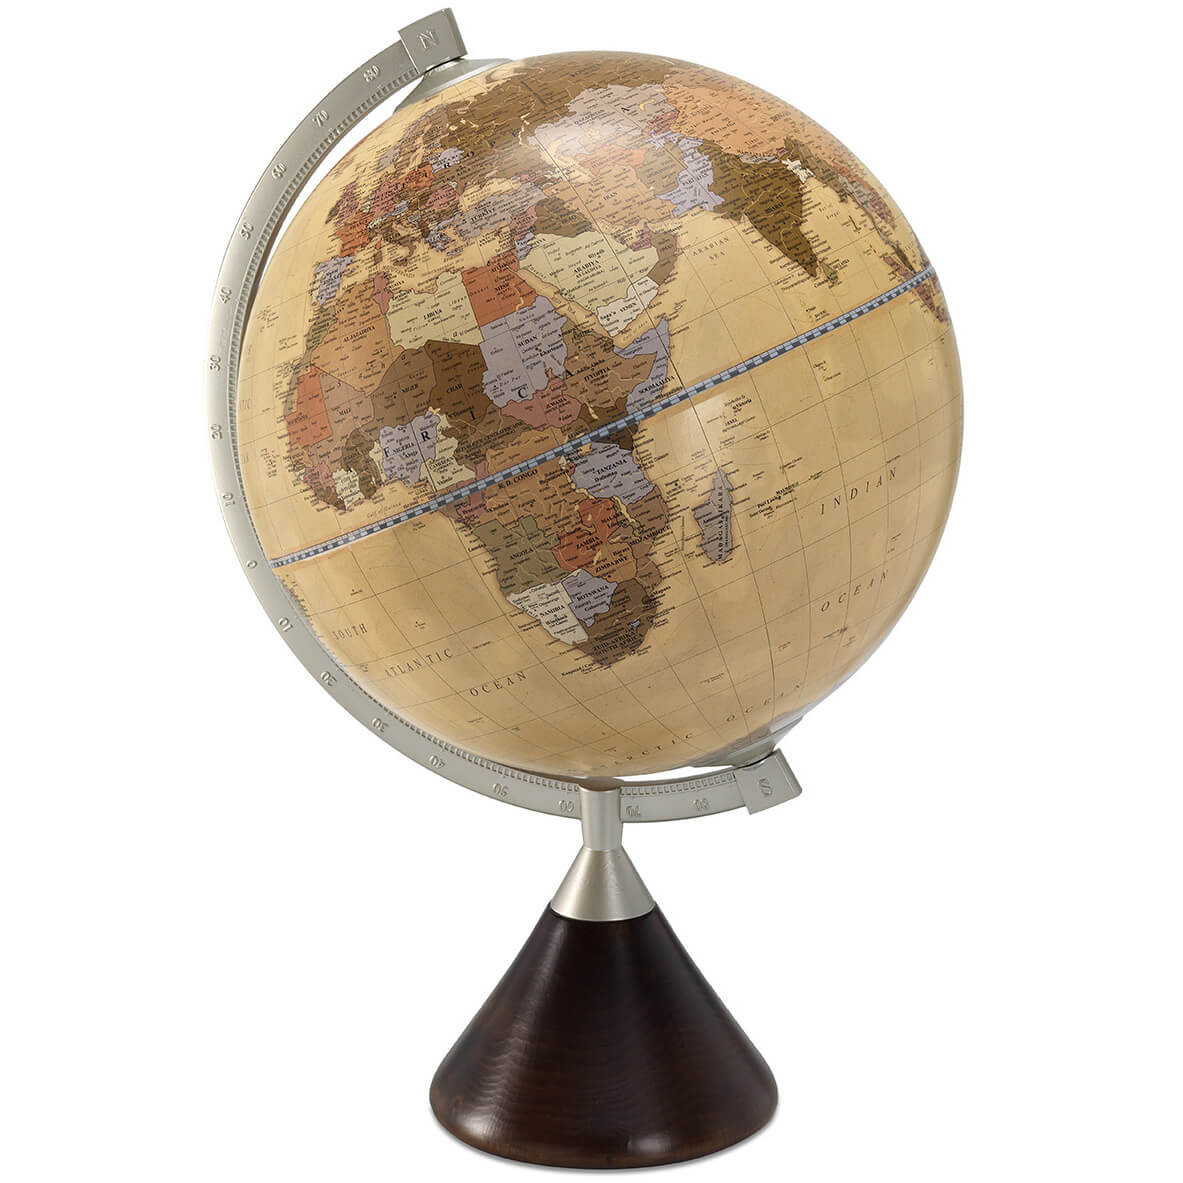 Coronelli Antique Desk Globe